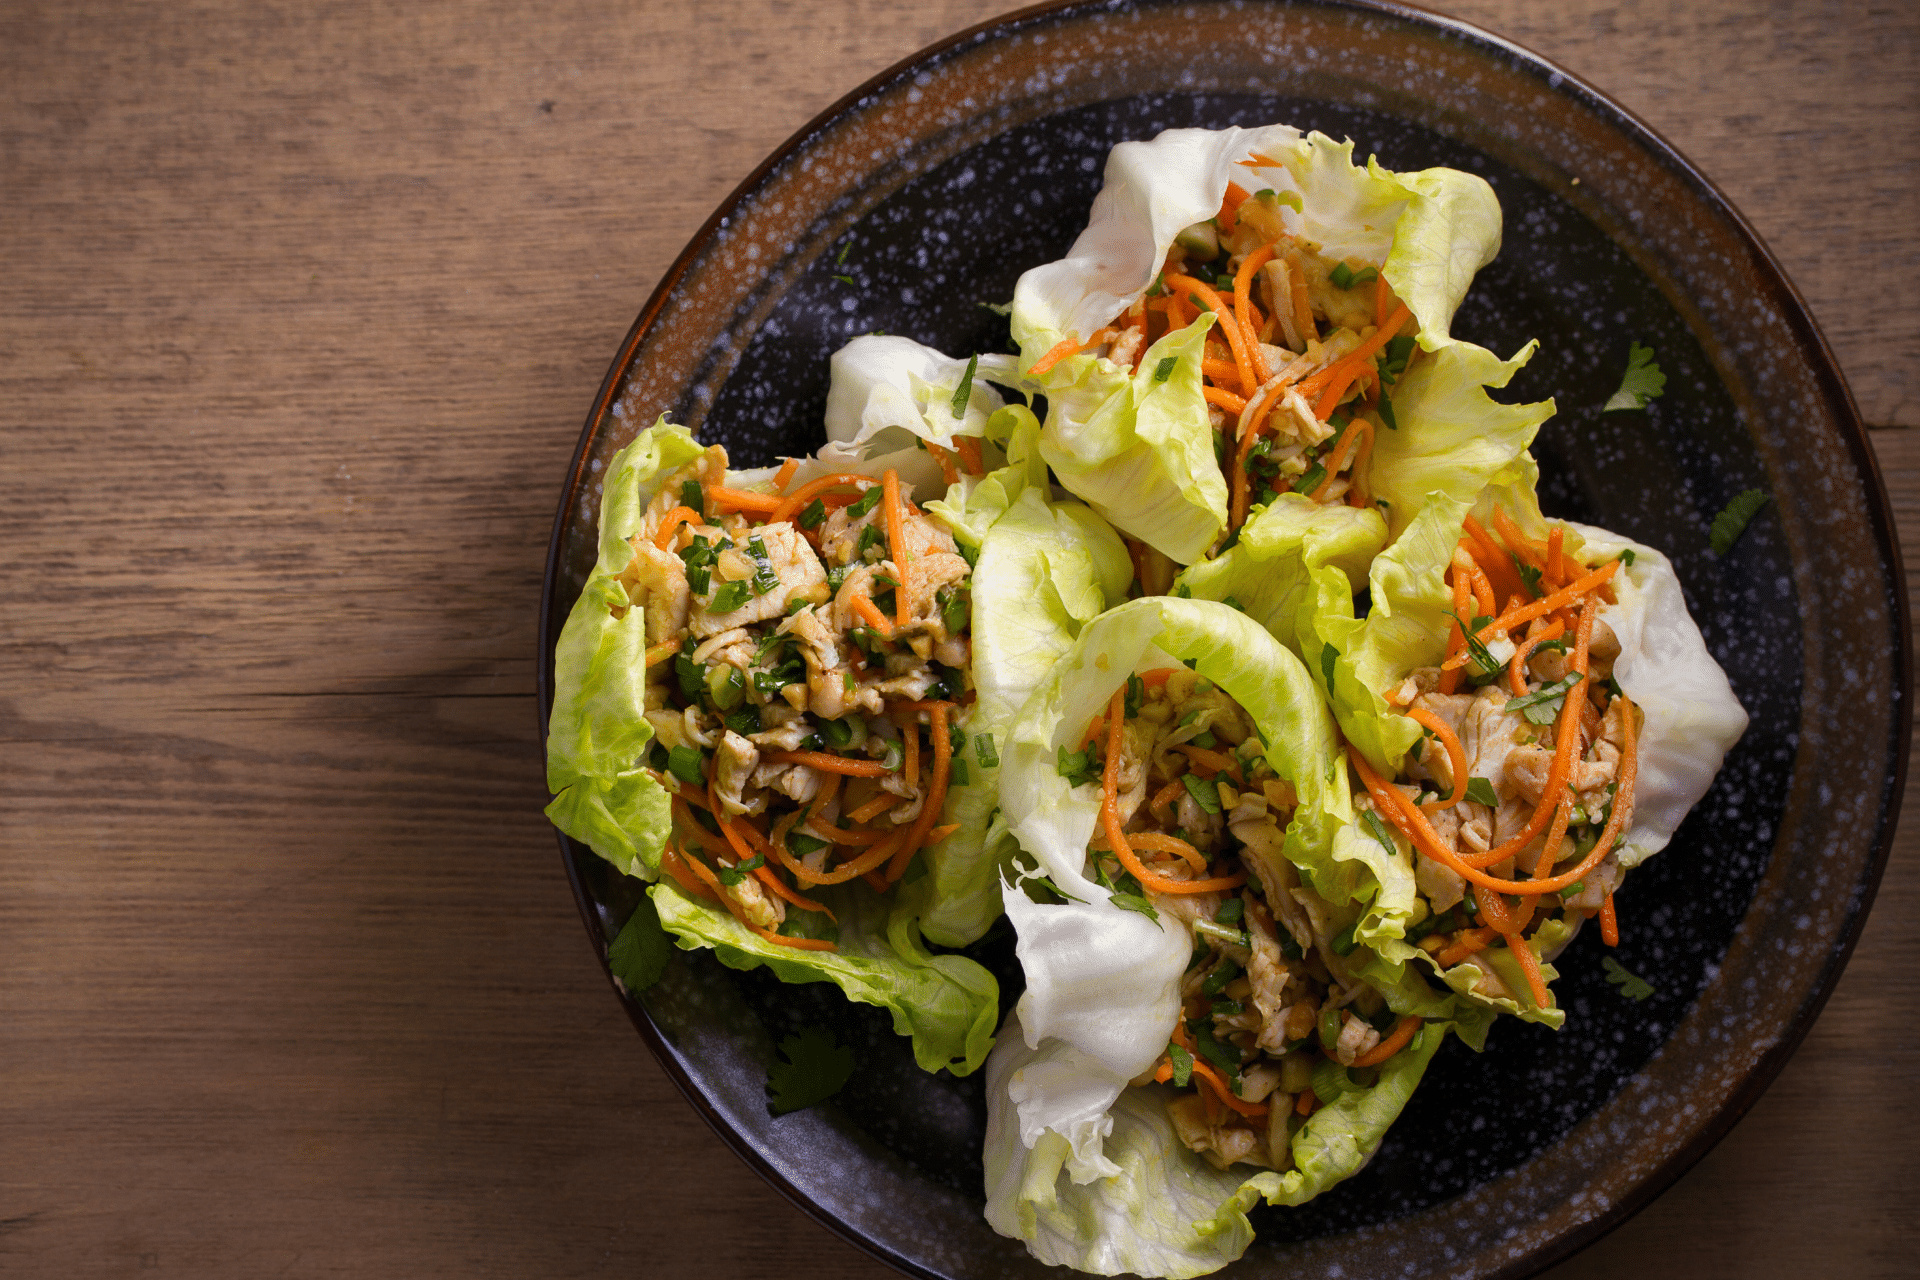 lettuce wrap with ground pork, lettuce and onion